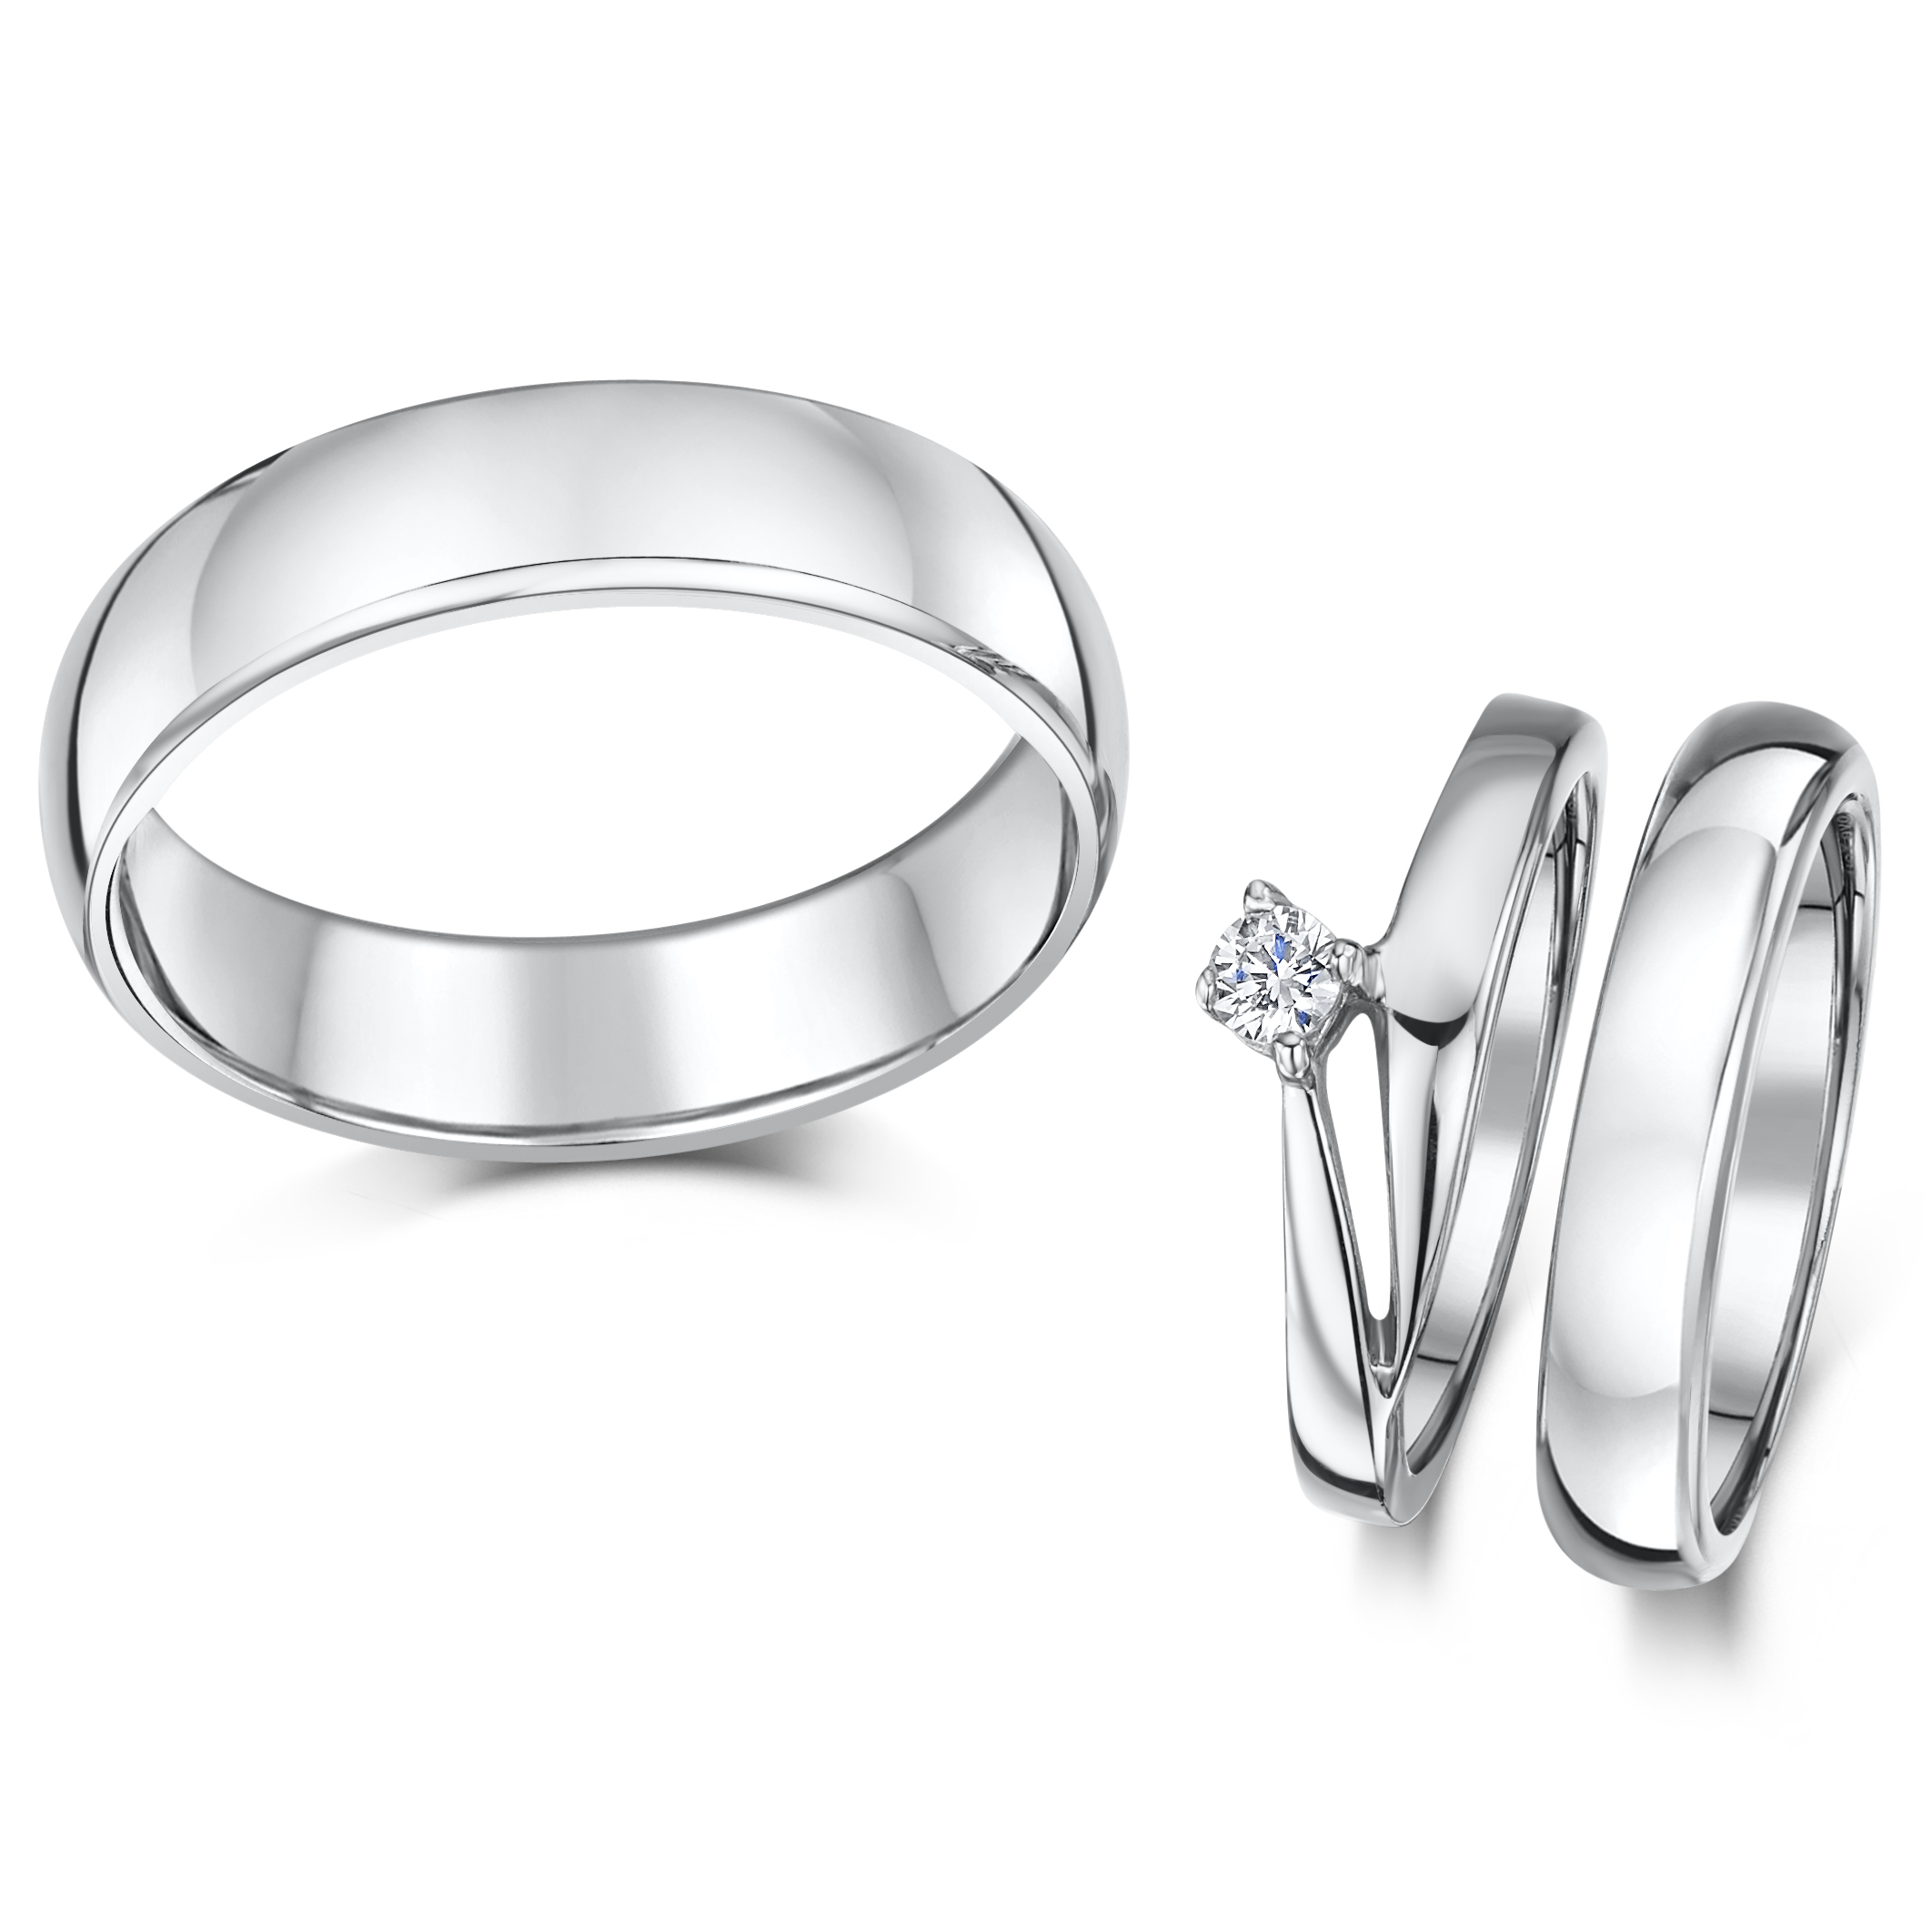 Cobalt Illusion Crossover Engagement His & Hers 4&6mm Rings